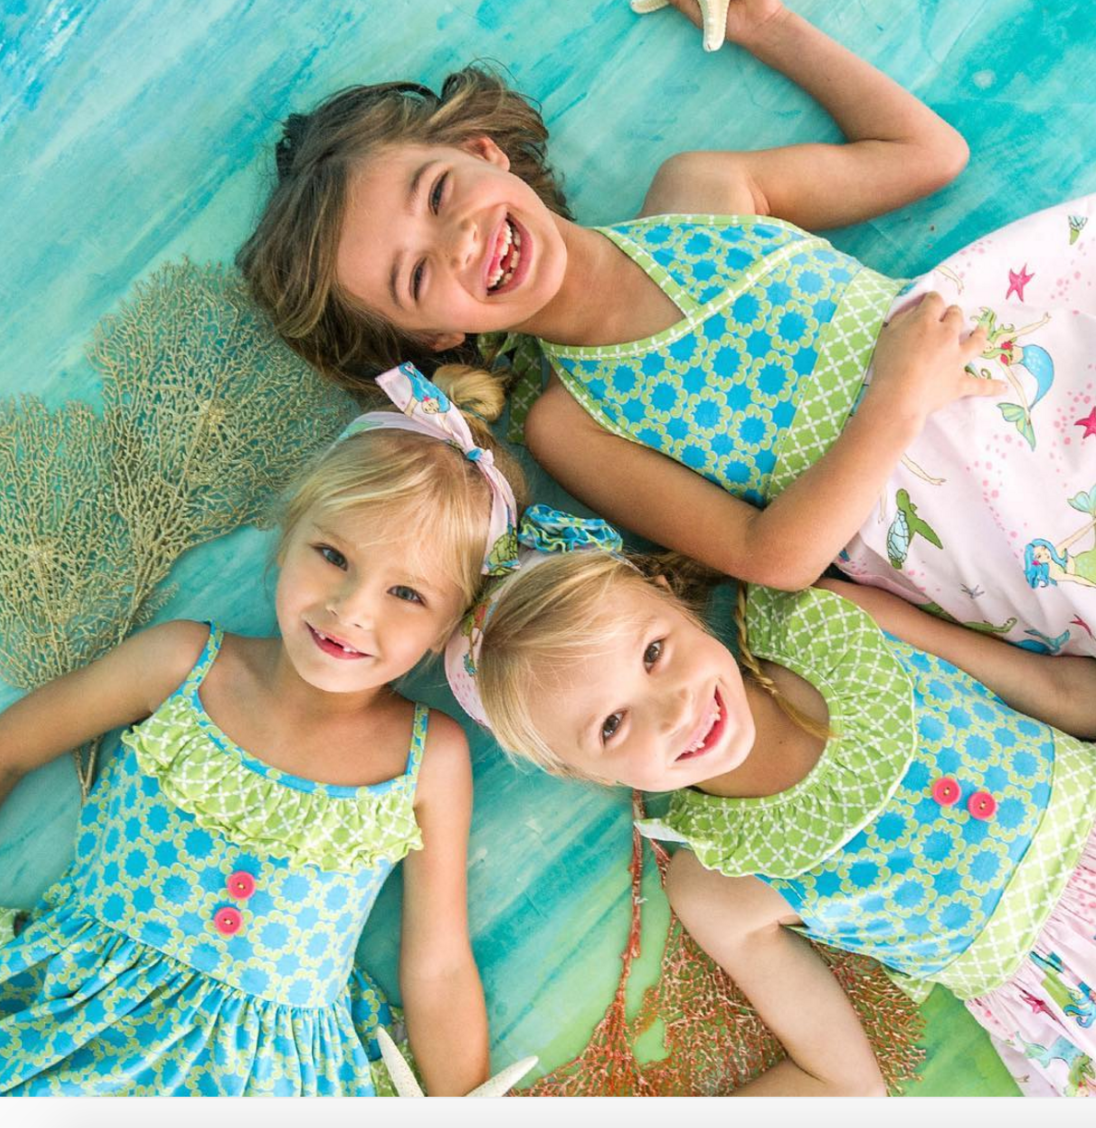 FROM ELEANOR ROSE CHILDREN'S CLOTHING:  UNDER THE SEA RELEASES TODAY, WEDNESDAY, APRIL 6TH AT 7AM CT!